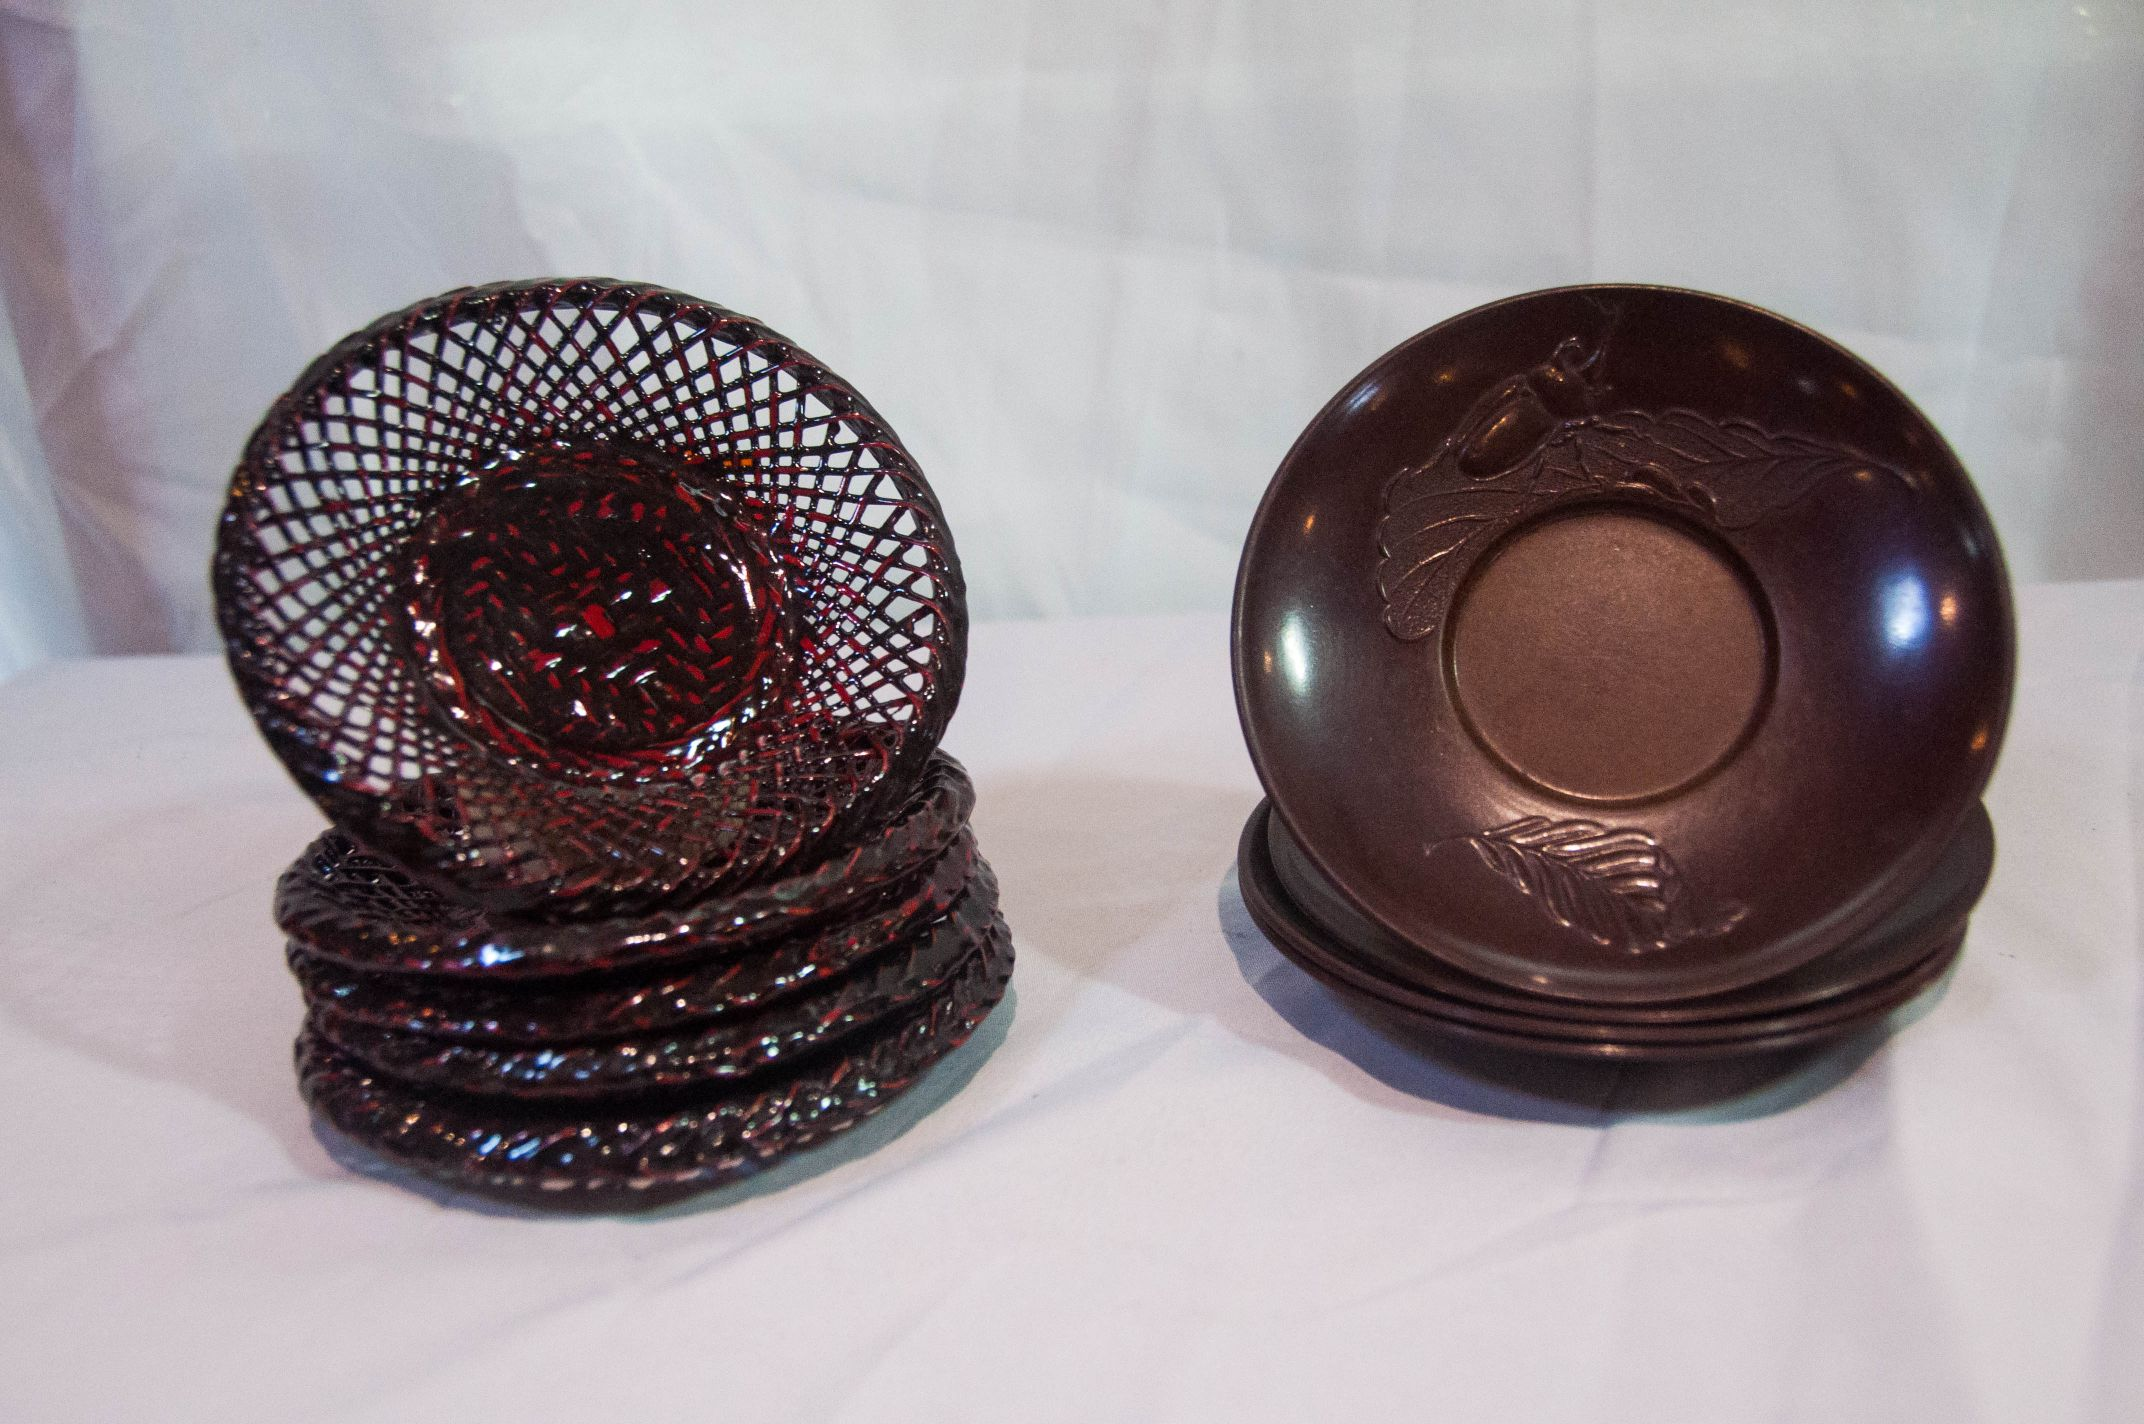 Bamboo Lacquer Saucer Japanese 5D Set/5 AND Saucer Lacquer Japanese Set/3